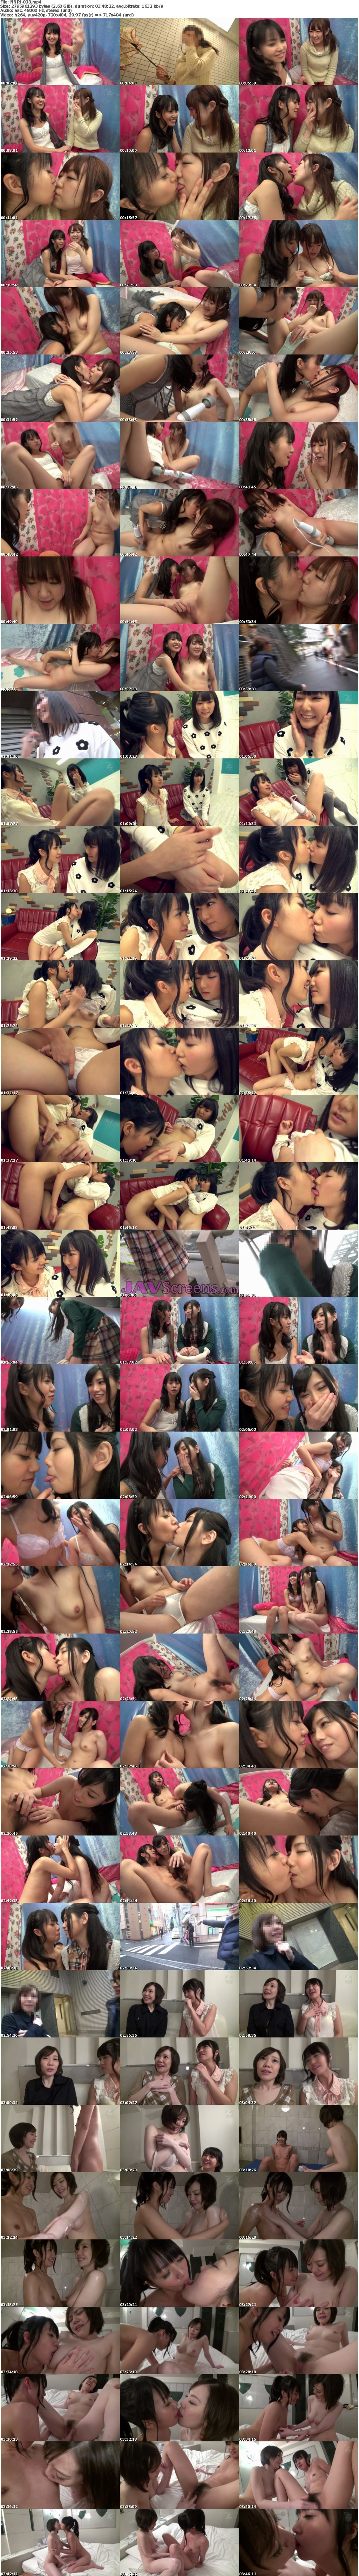 NNPJ-033.jpg - JAV Screenshot